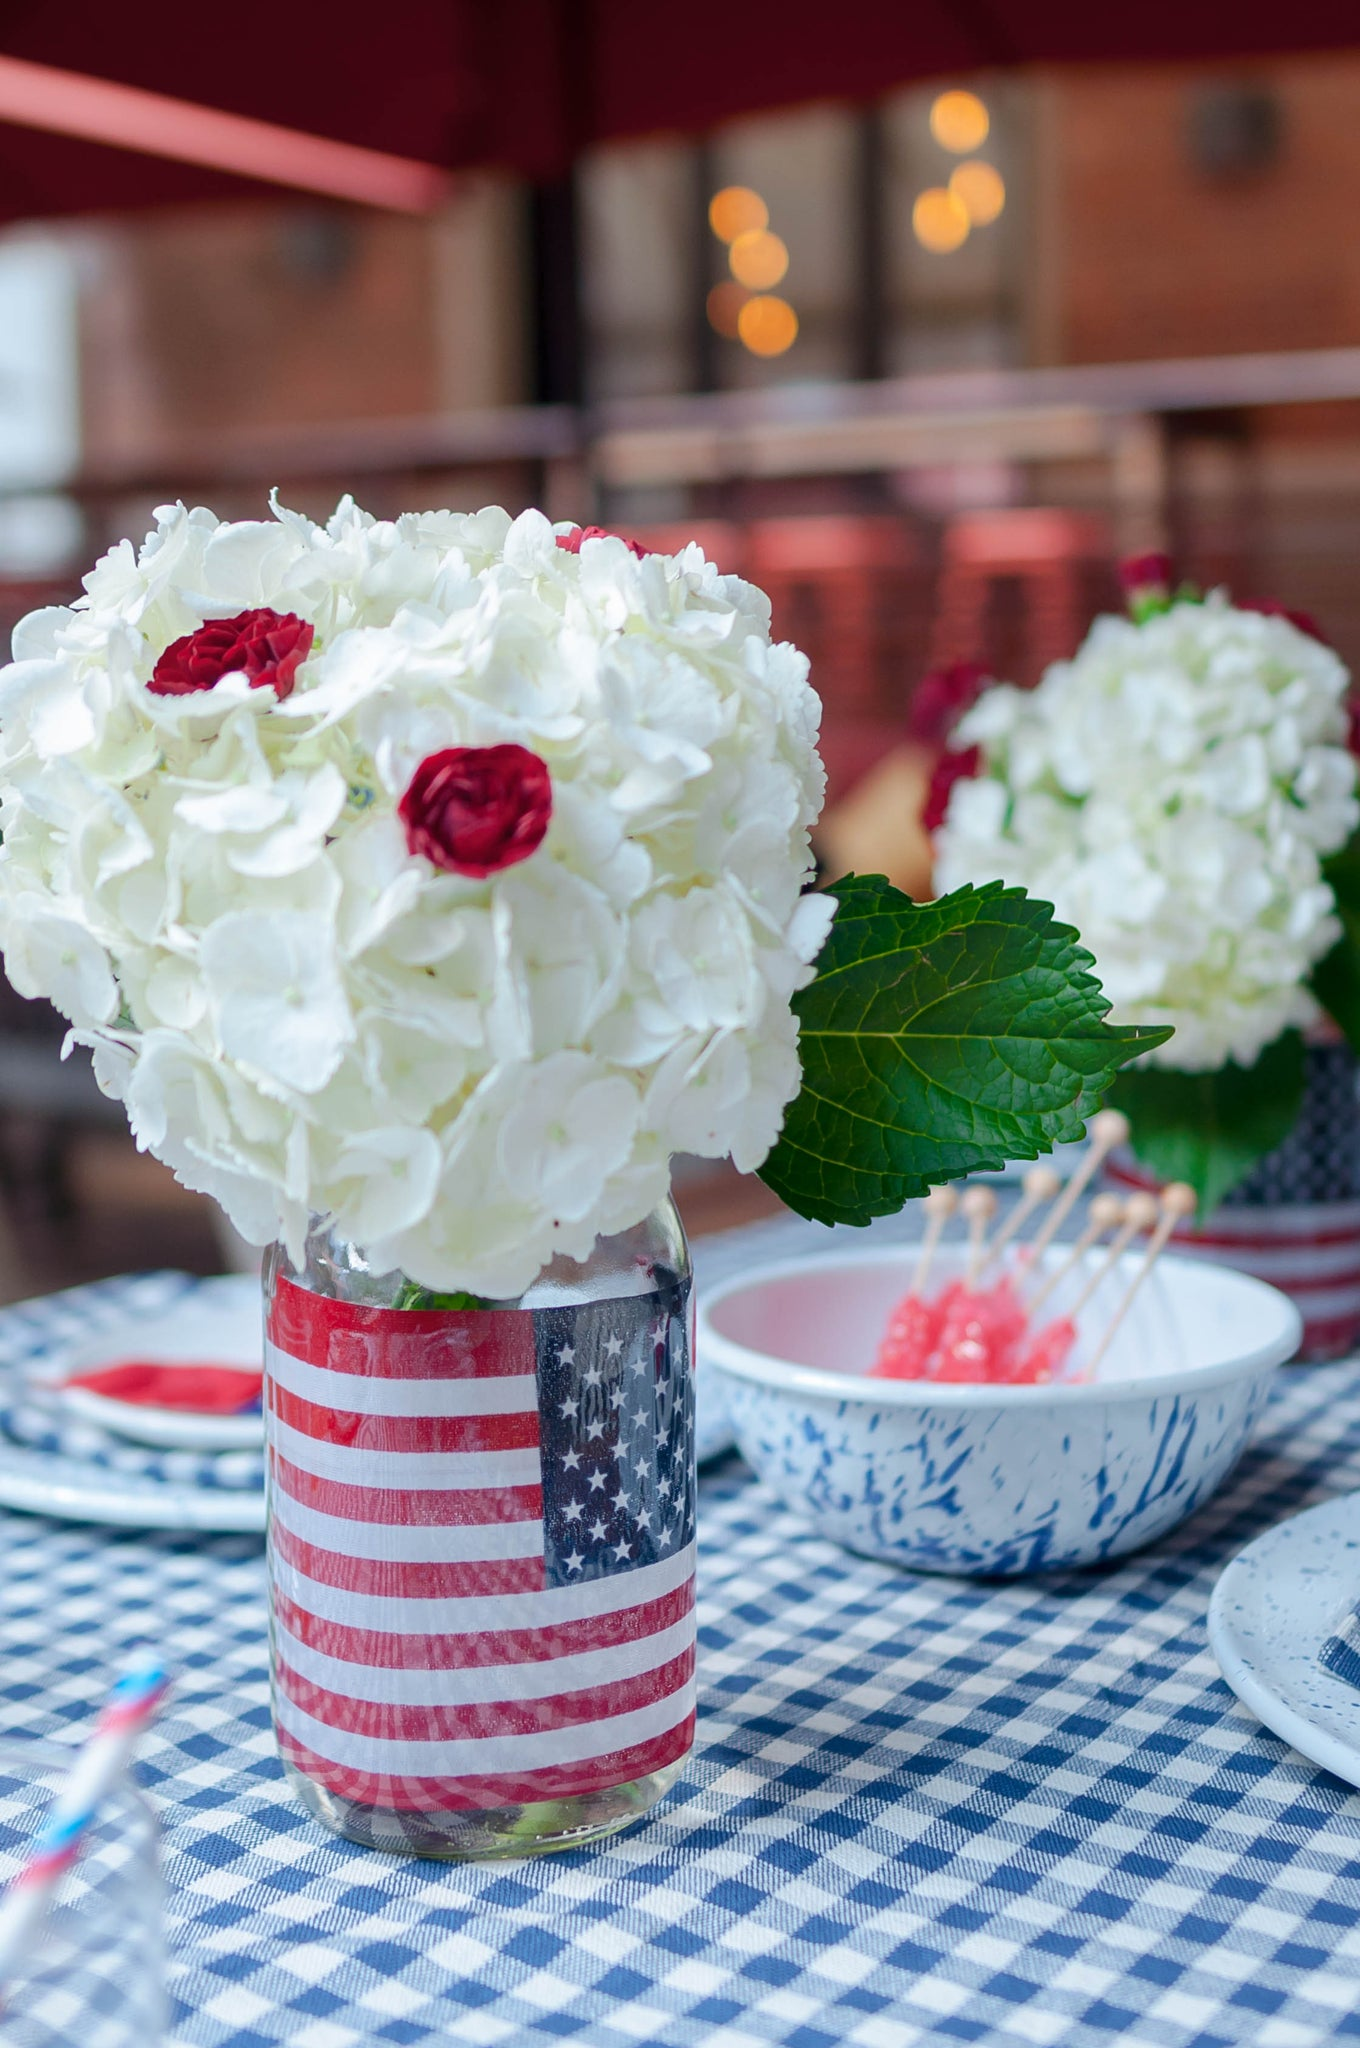 Party Decor DIY 4th of July Centerpiece